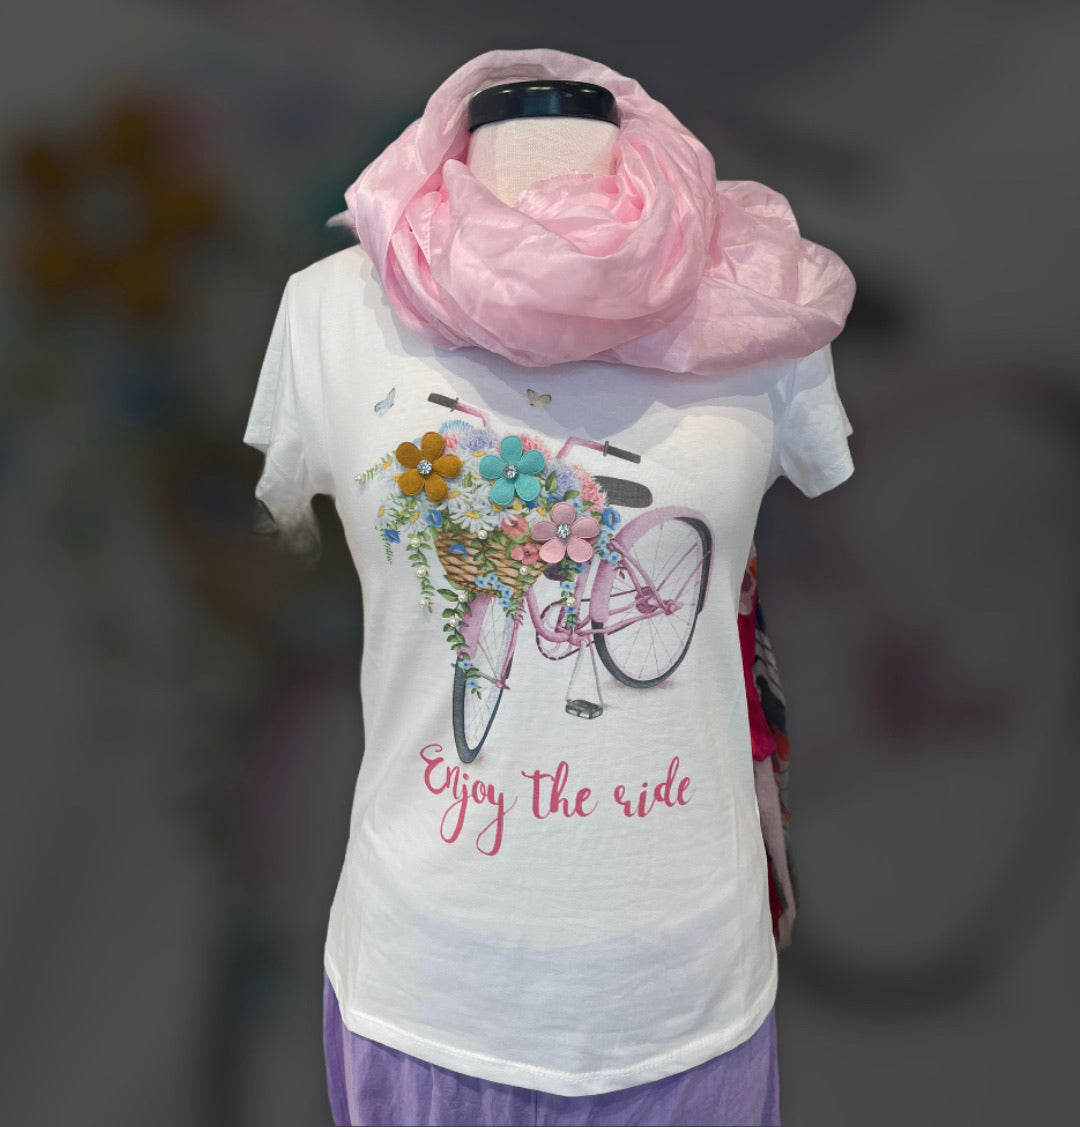 T-shirt 100% cotton bike and flowers one size fits all